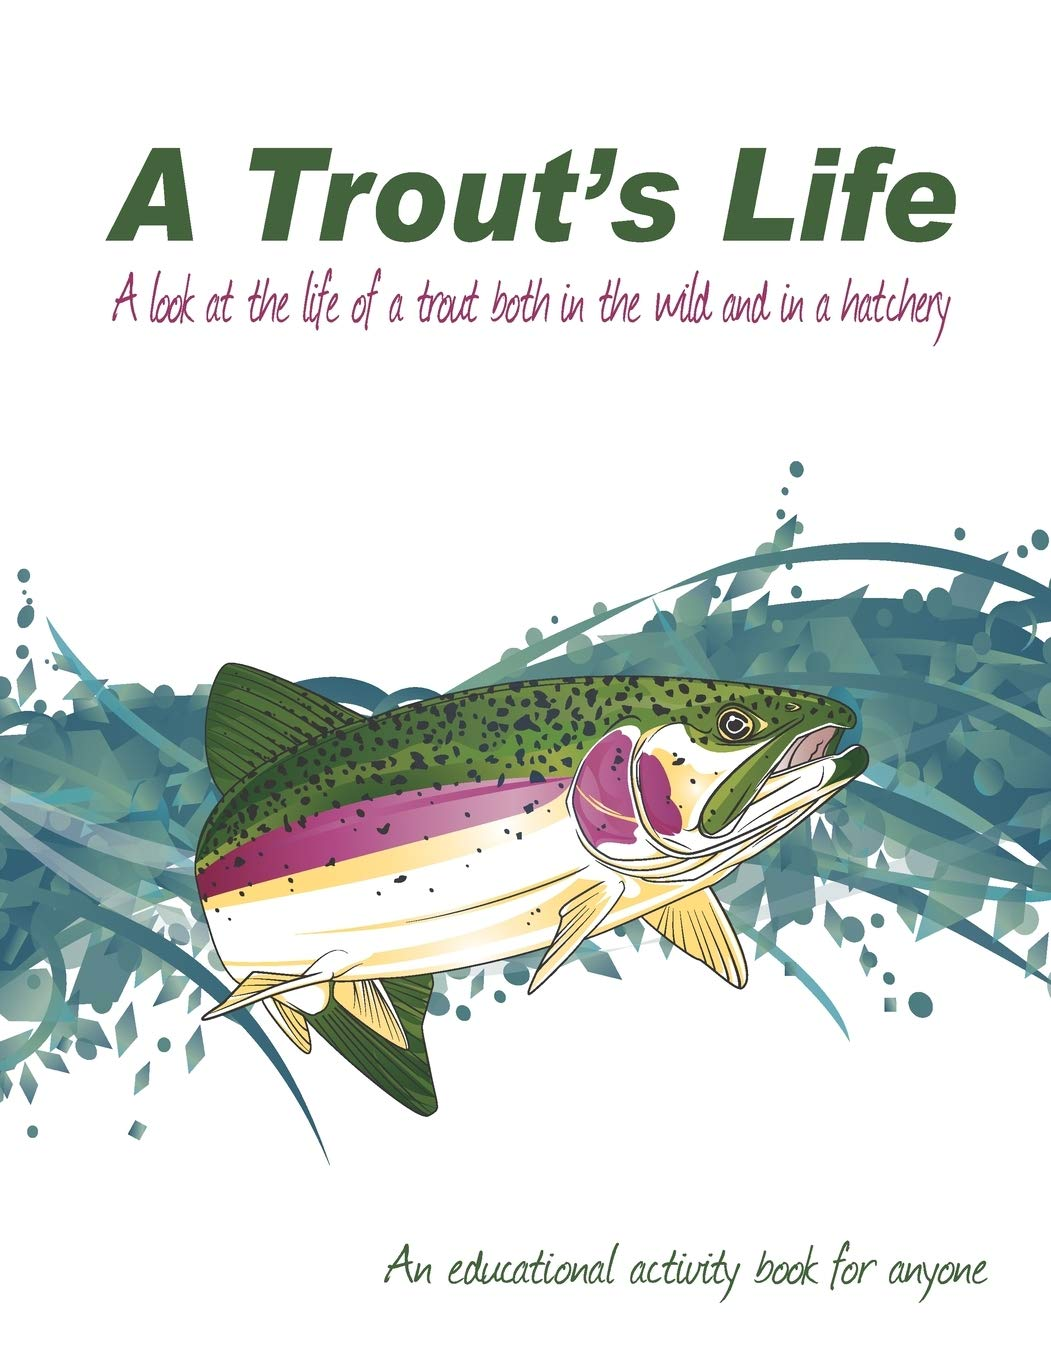 Amazon Com A Trout S Life A Look At The Life Of A Trout Both In The Wild And In A Hatchery Trout Coloring Book 9781689986212 Hailey Kyle Williams John Books